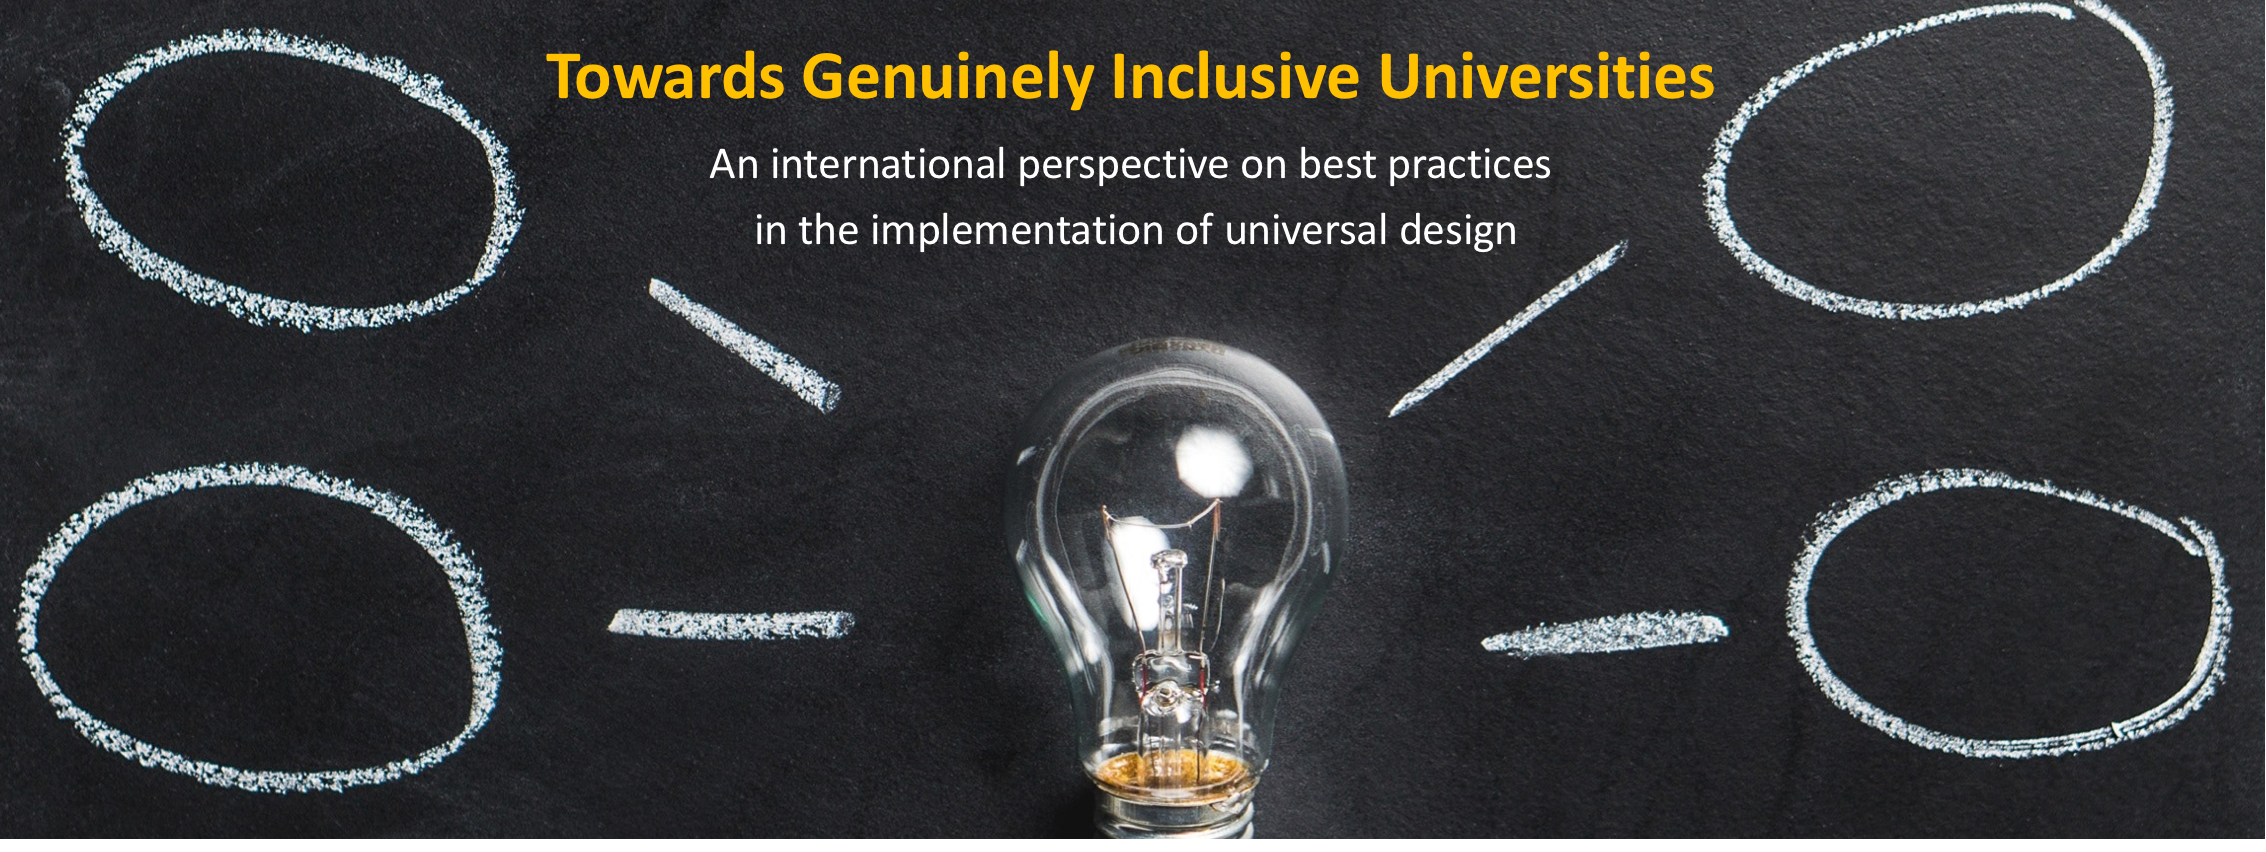 a lamp and innovative ideas with the title of the webinar 'Towards Genuinely Inclusive Universities' An international perspective on best practices in the implementation of universal design